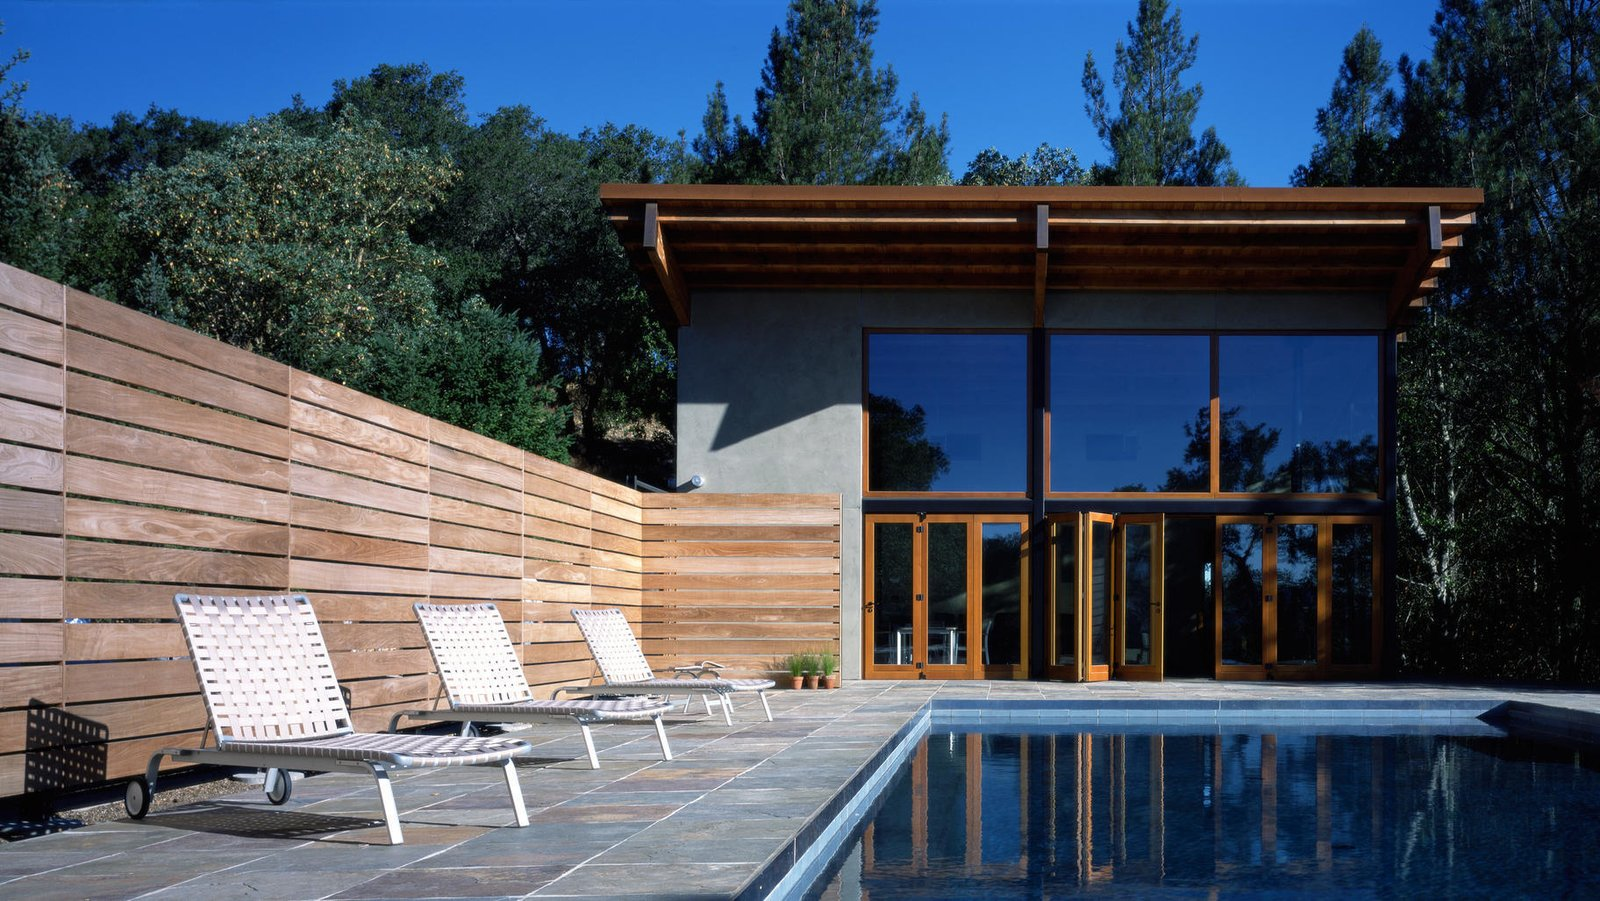 #pool #poolhouse #calistoga #exterior #smallspaces #cantileveredroof #cantilevered #roof #glass #windows  Barnes Pool House